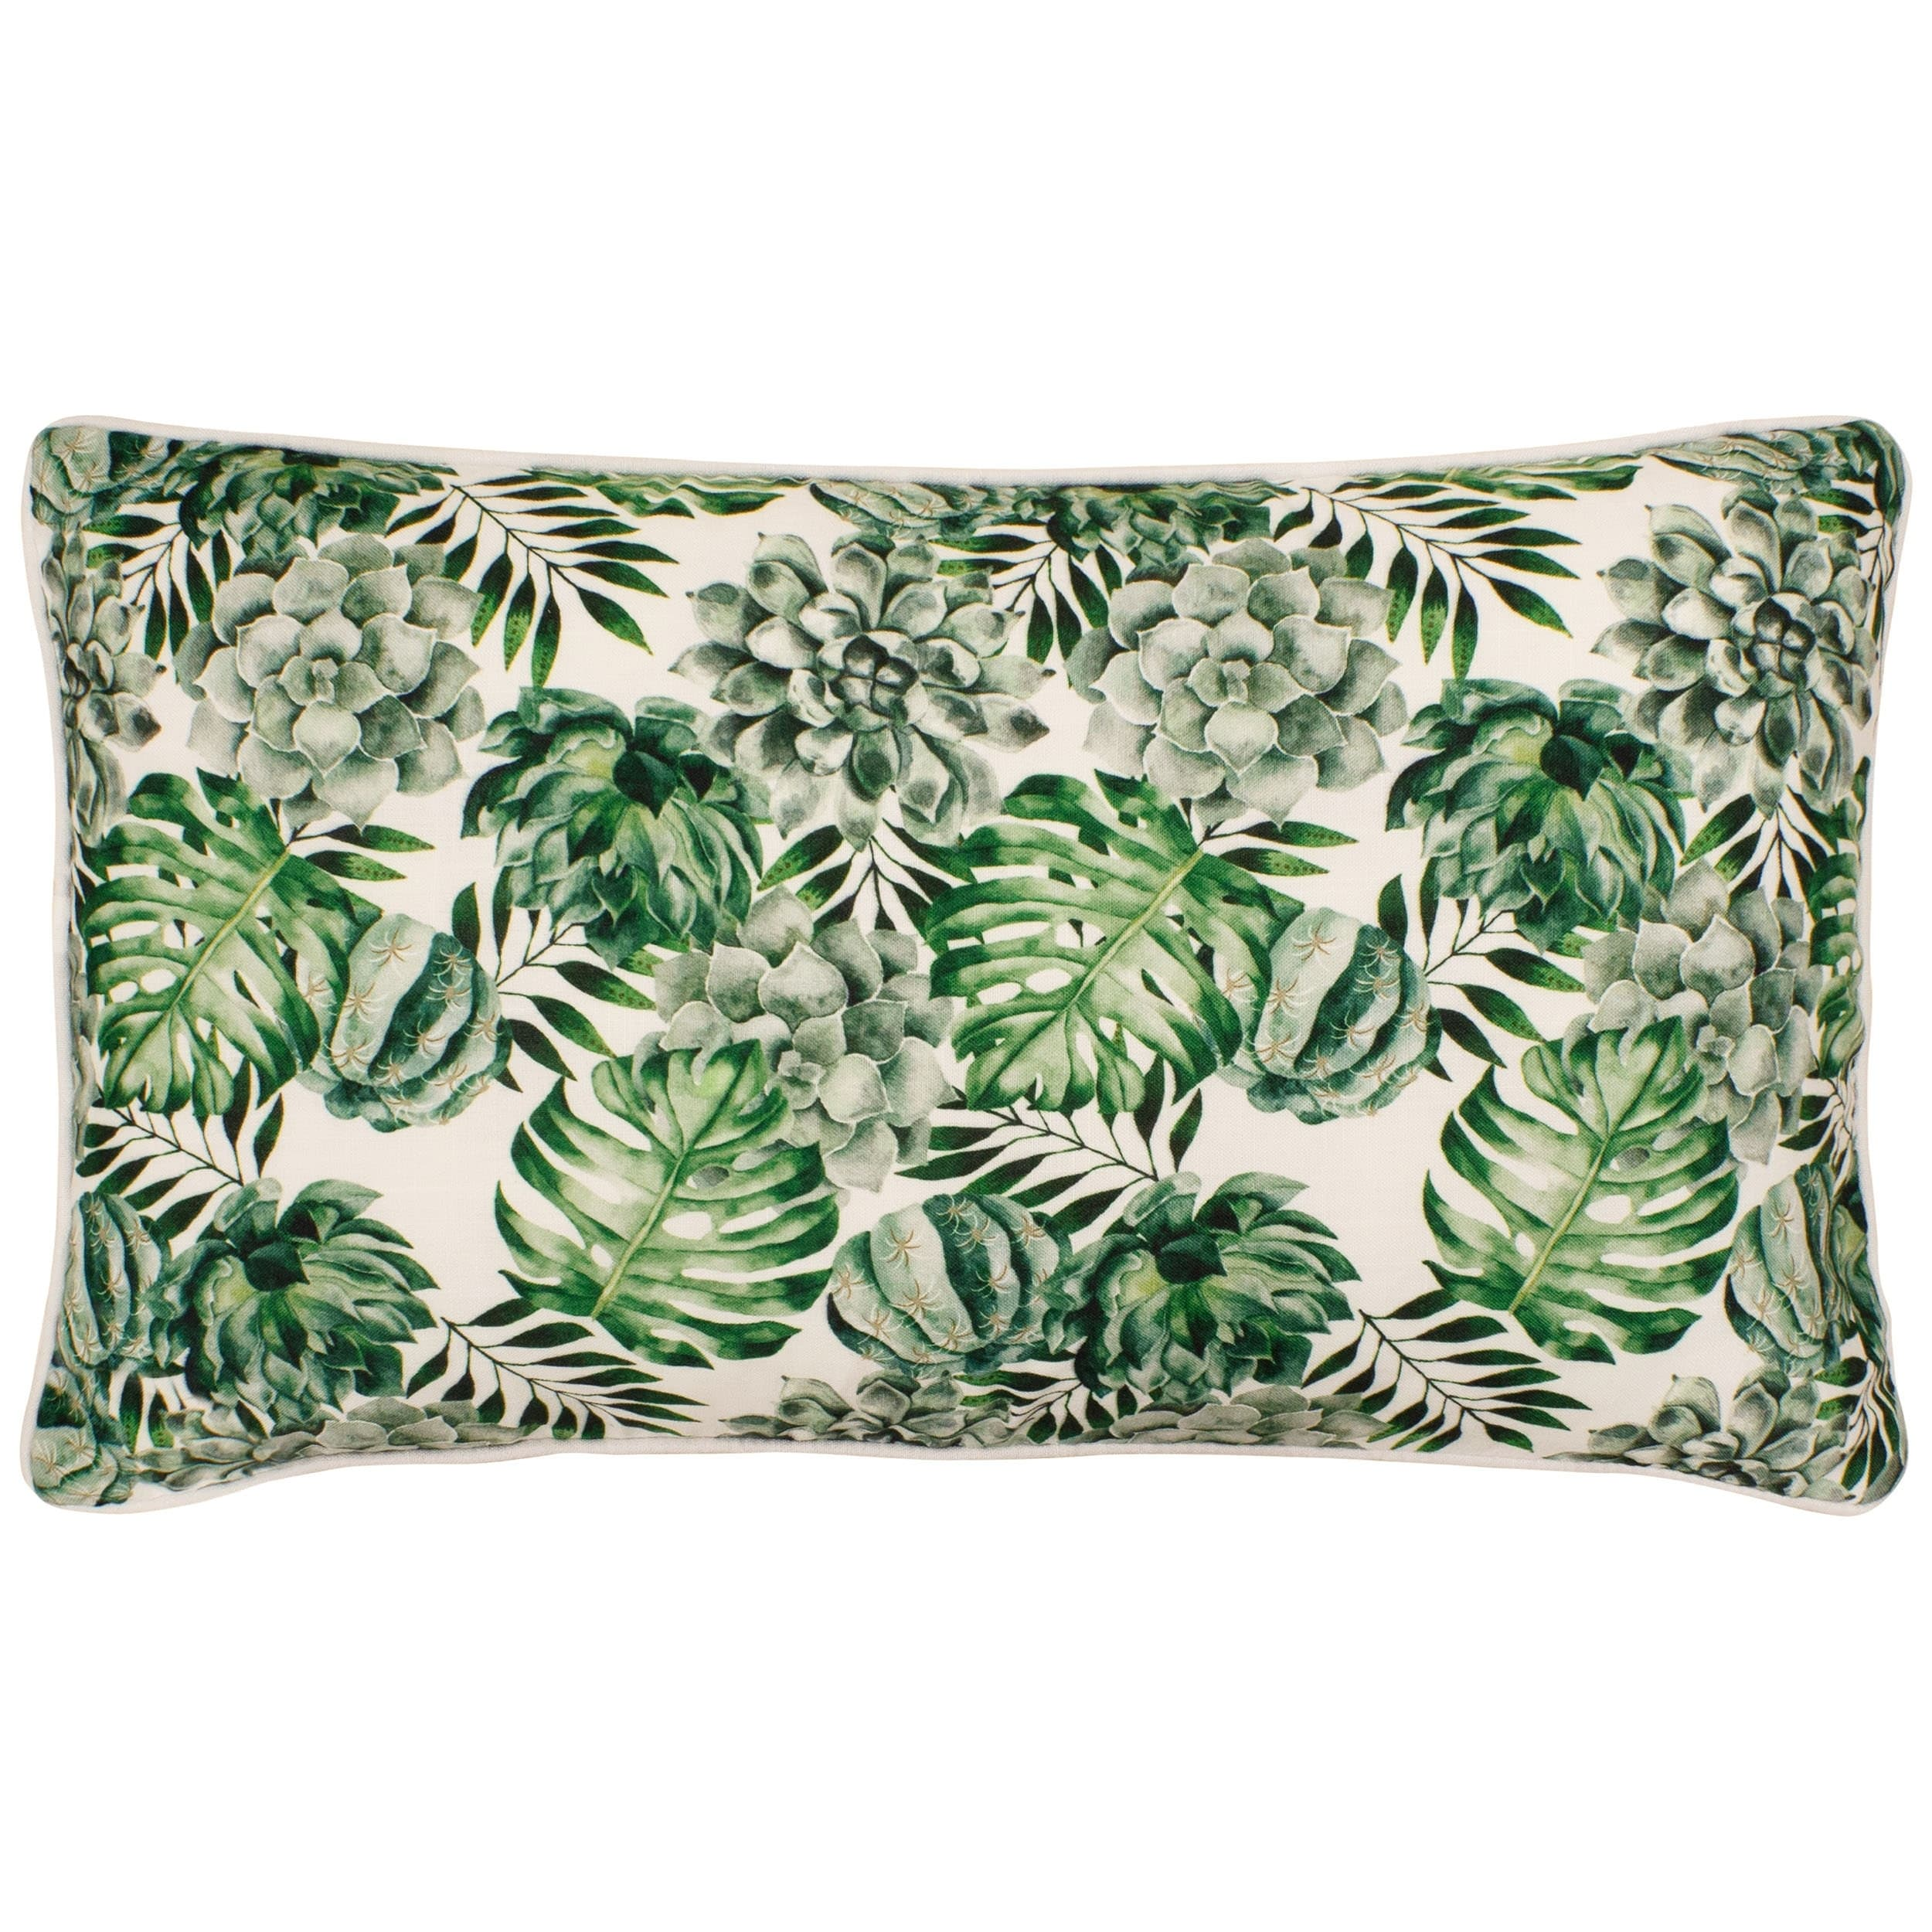 Shop Boho Living Botanical 14 X 24 In Decorative Lumbar Pillow On Sale Overstock 21545885